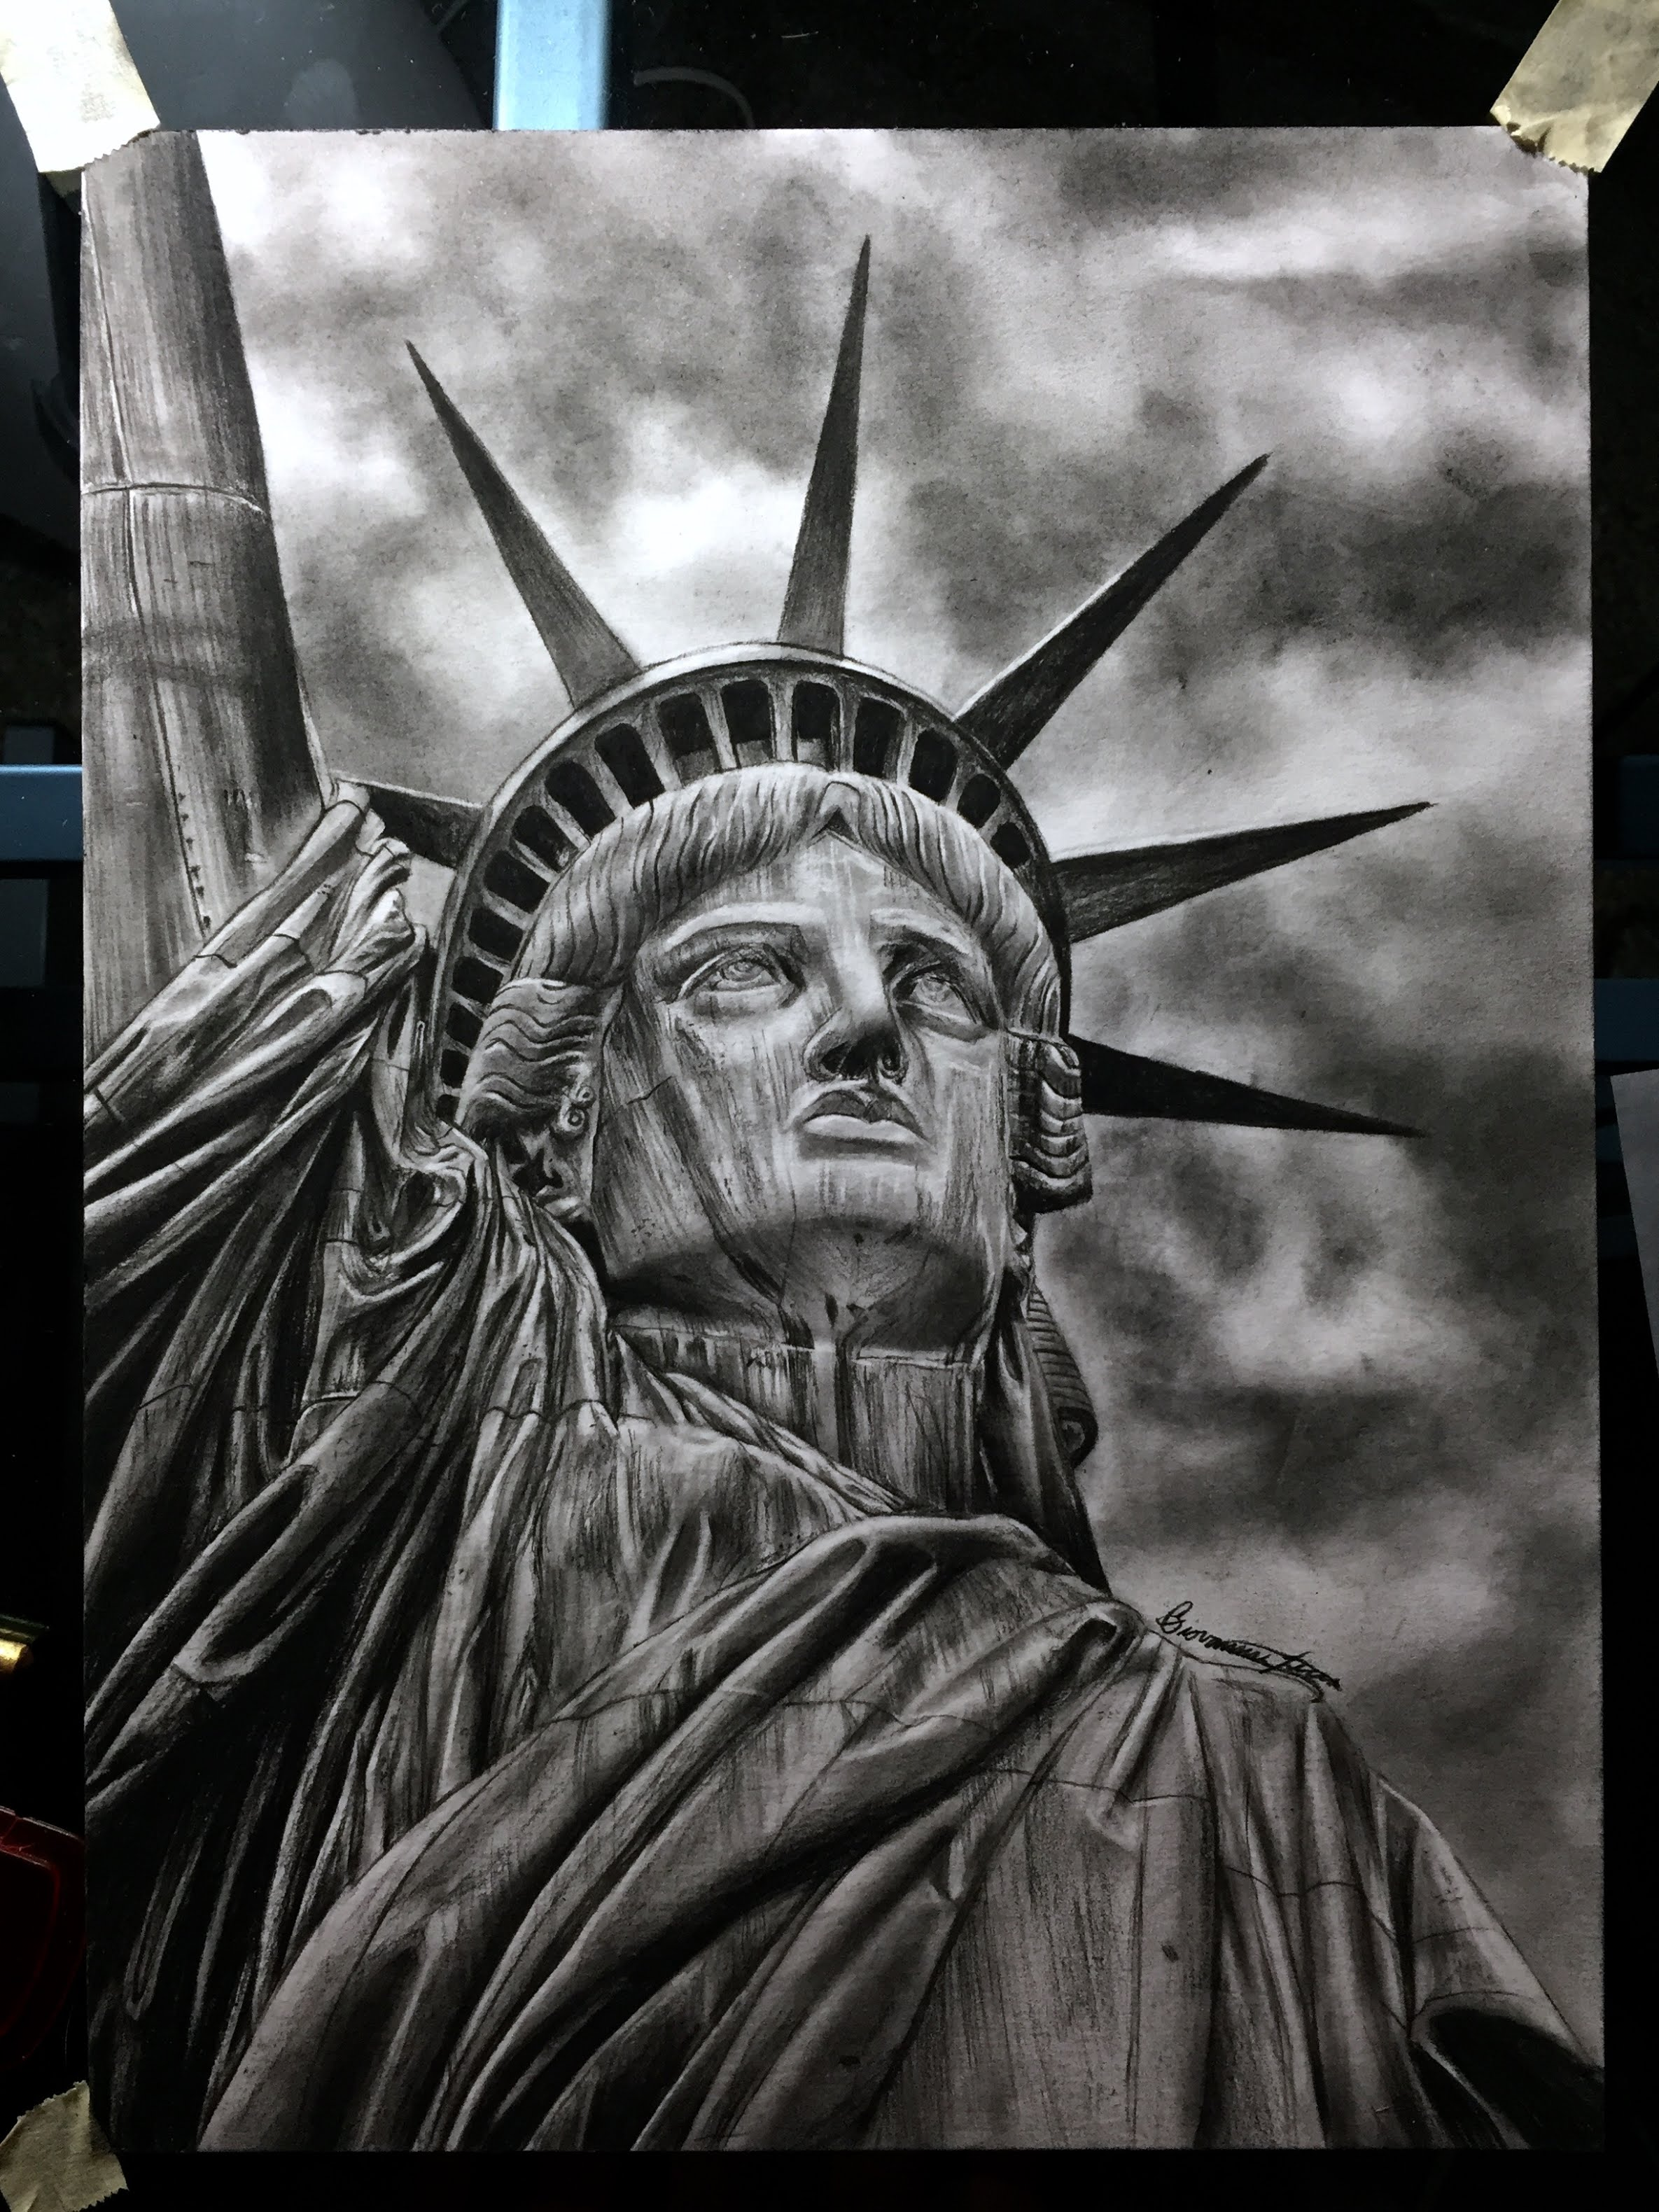 Drawn statue of liberty sculpture Most Drawing Statue YouTube The